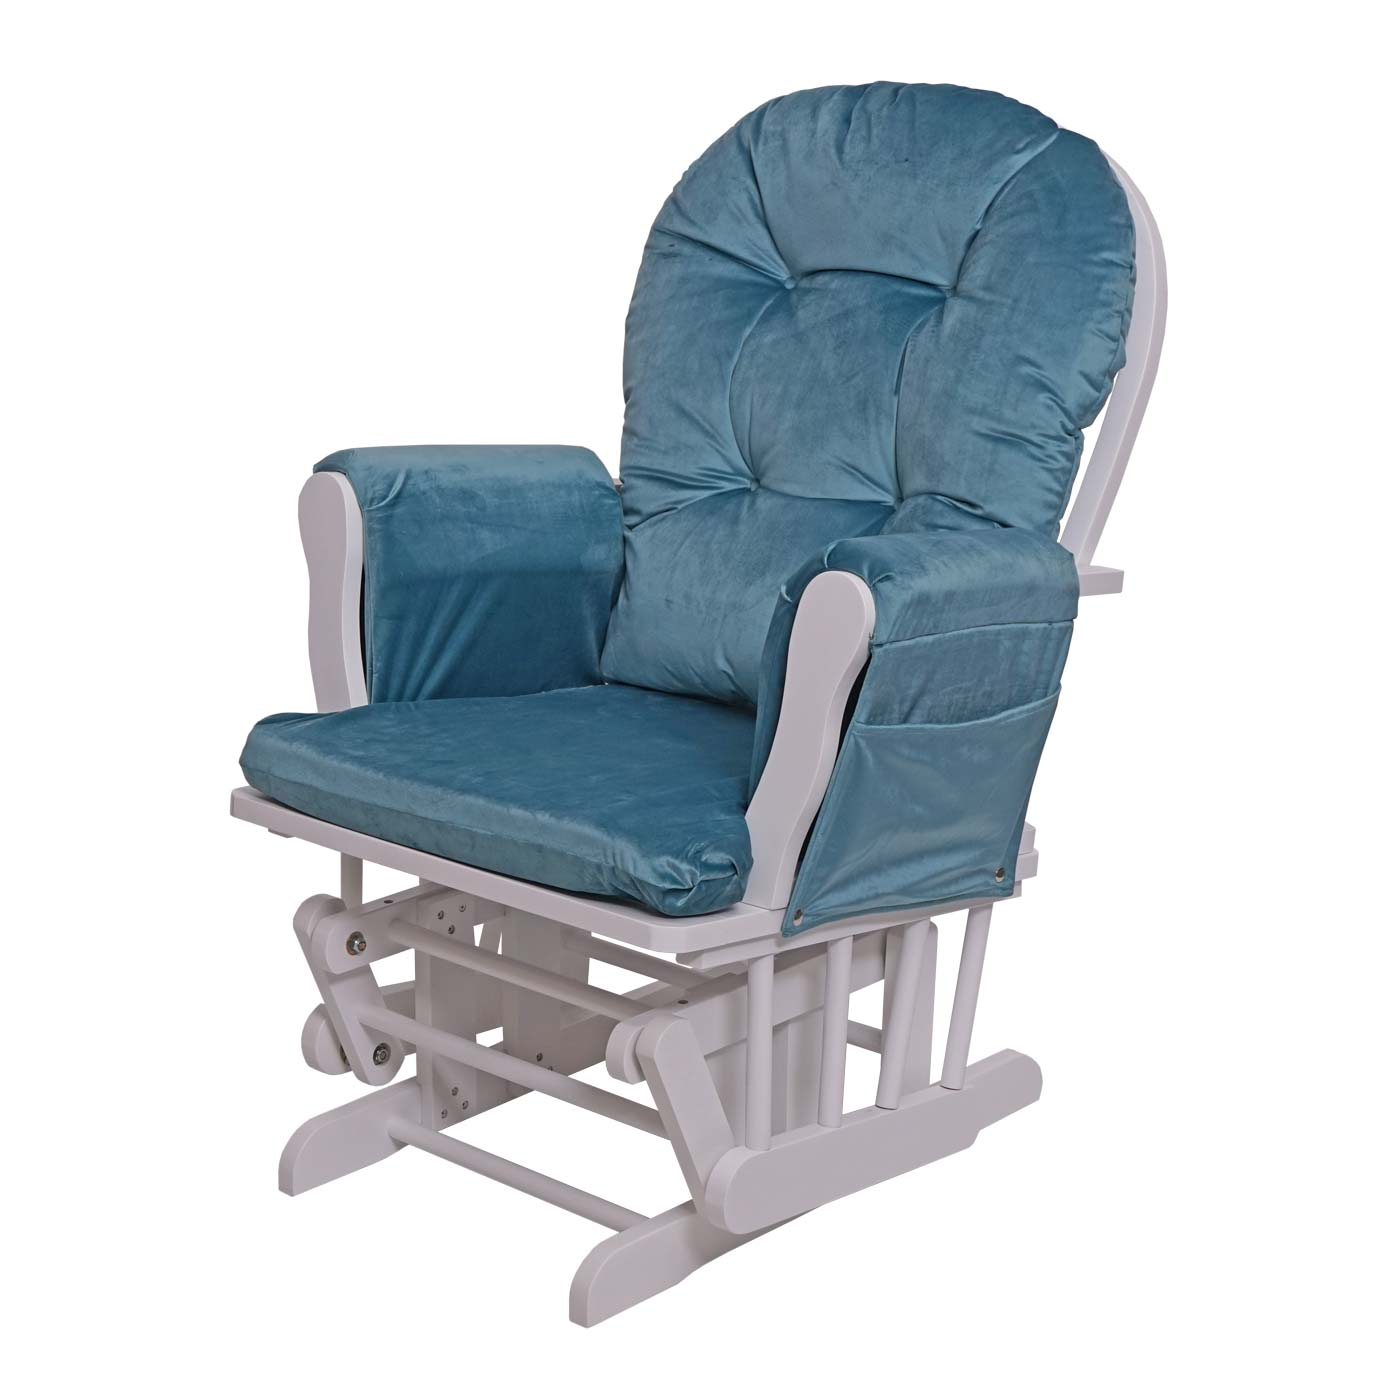 Relaxsessel HWC-C76 Frontansicht Sessel